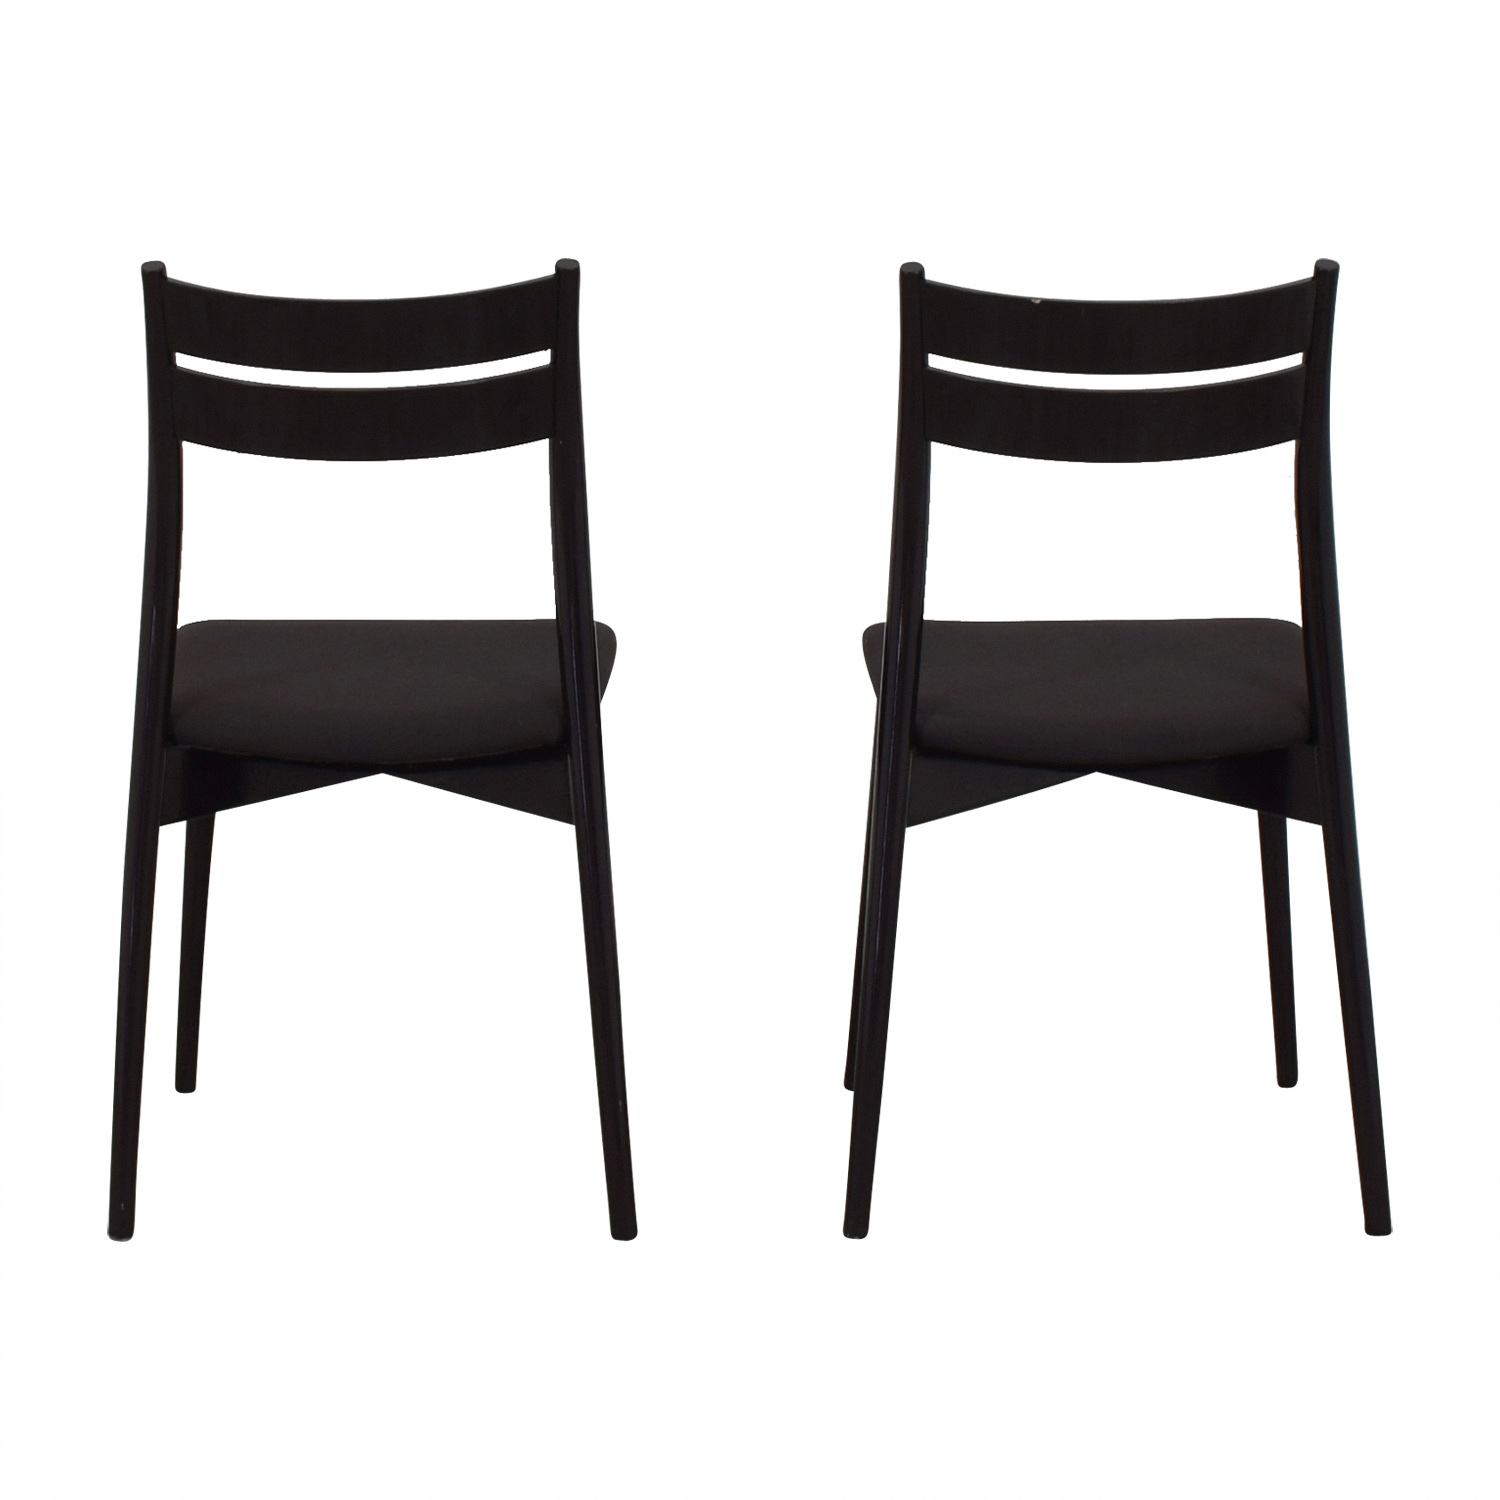 Calligaris Calligaris Black Dining Chairs Chairs